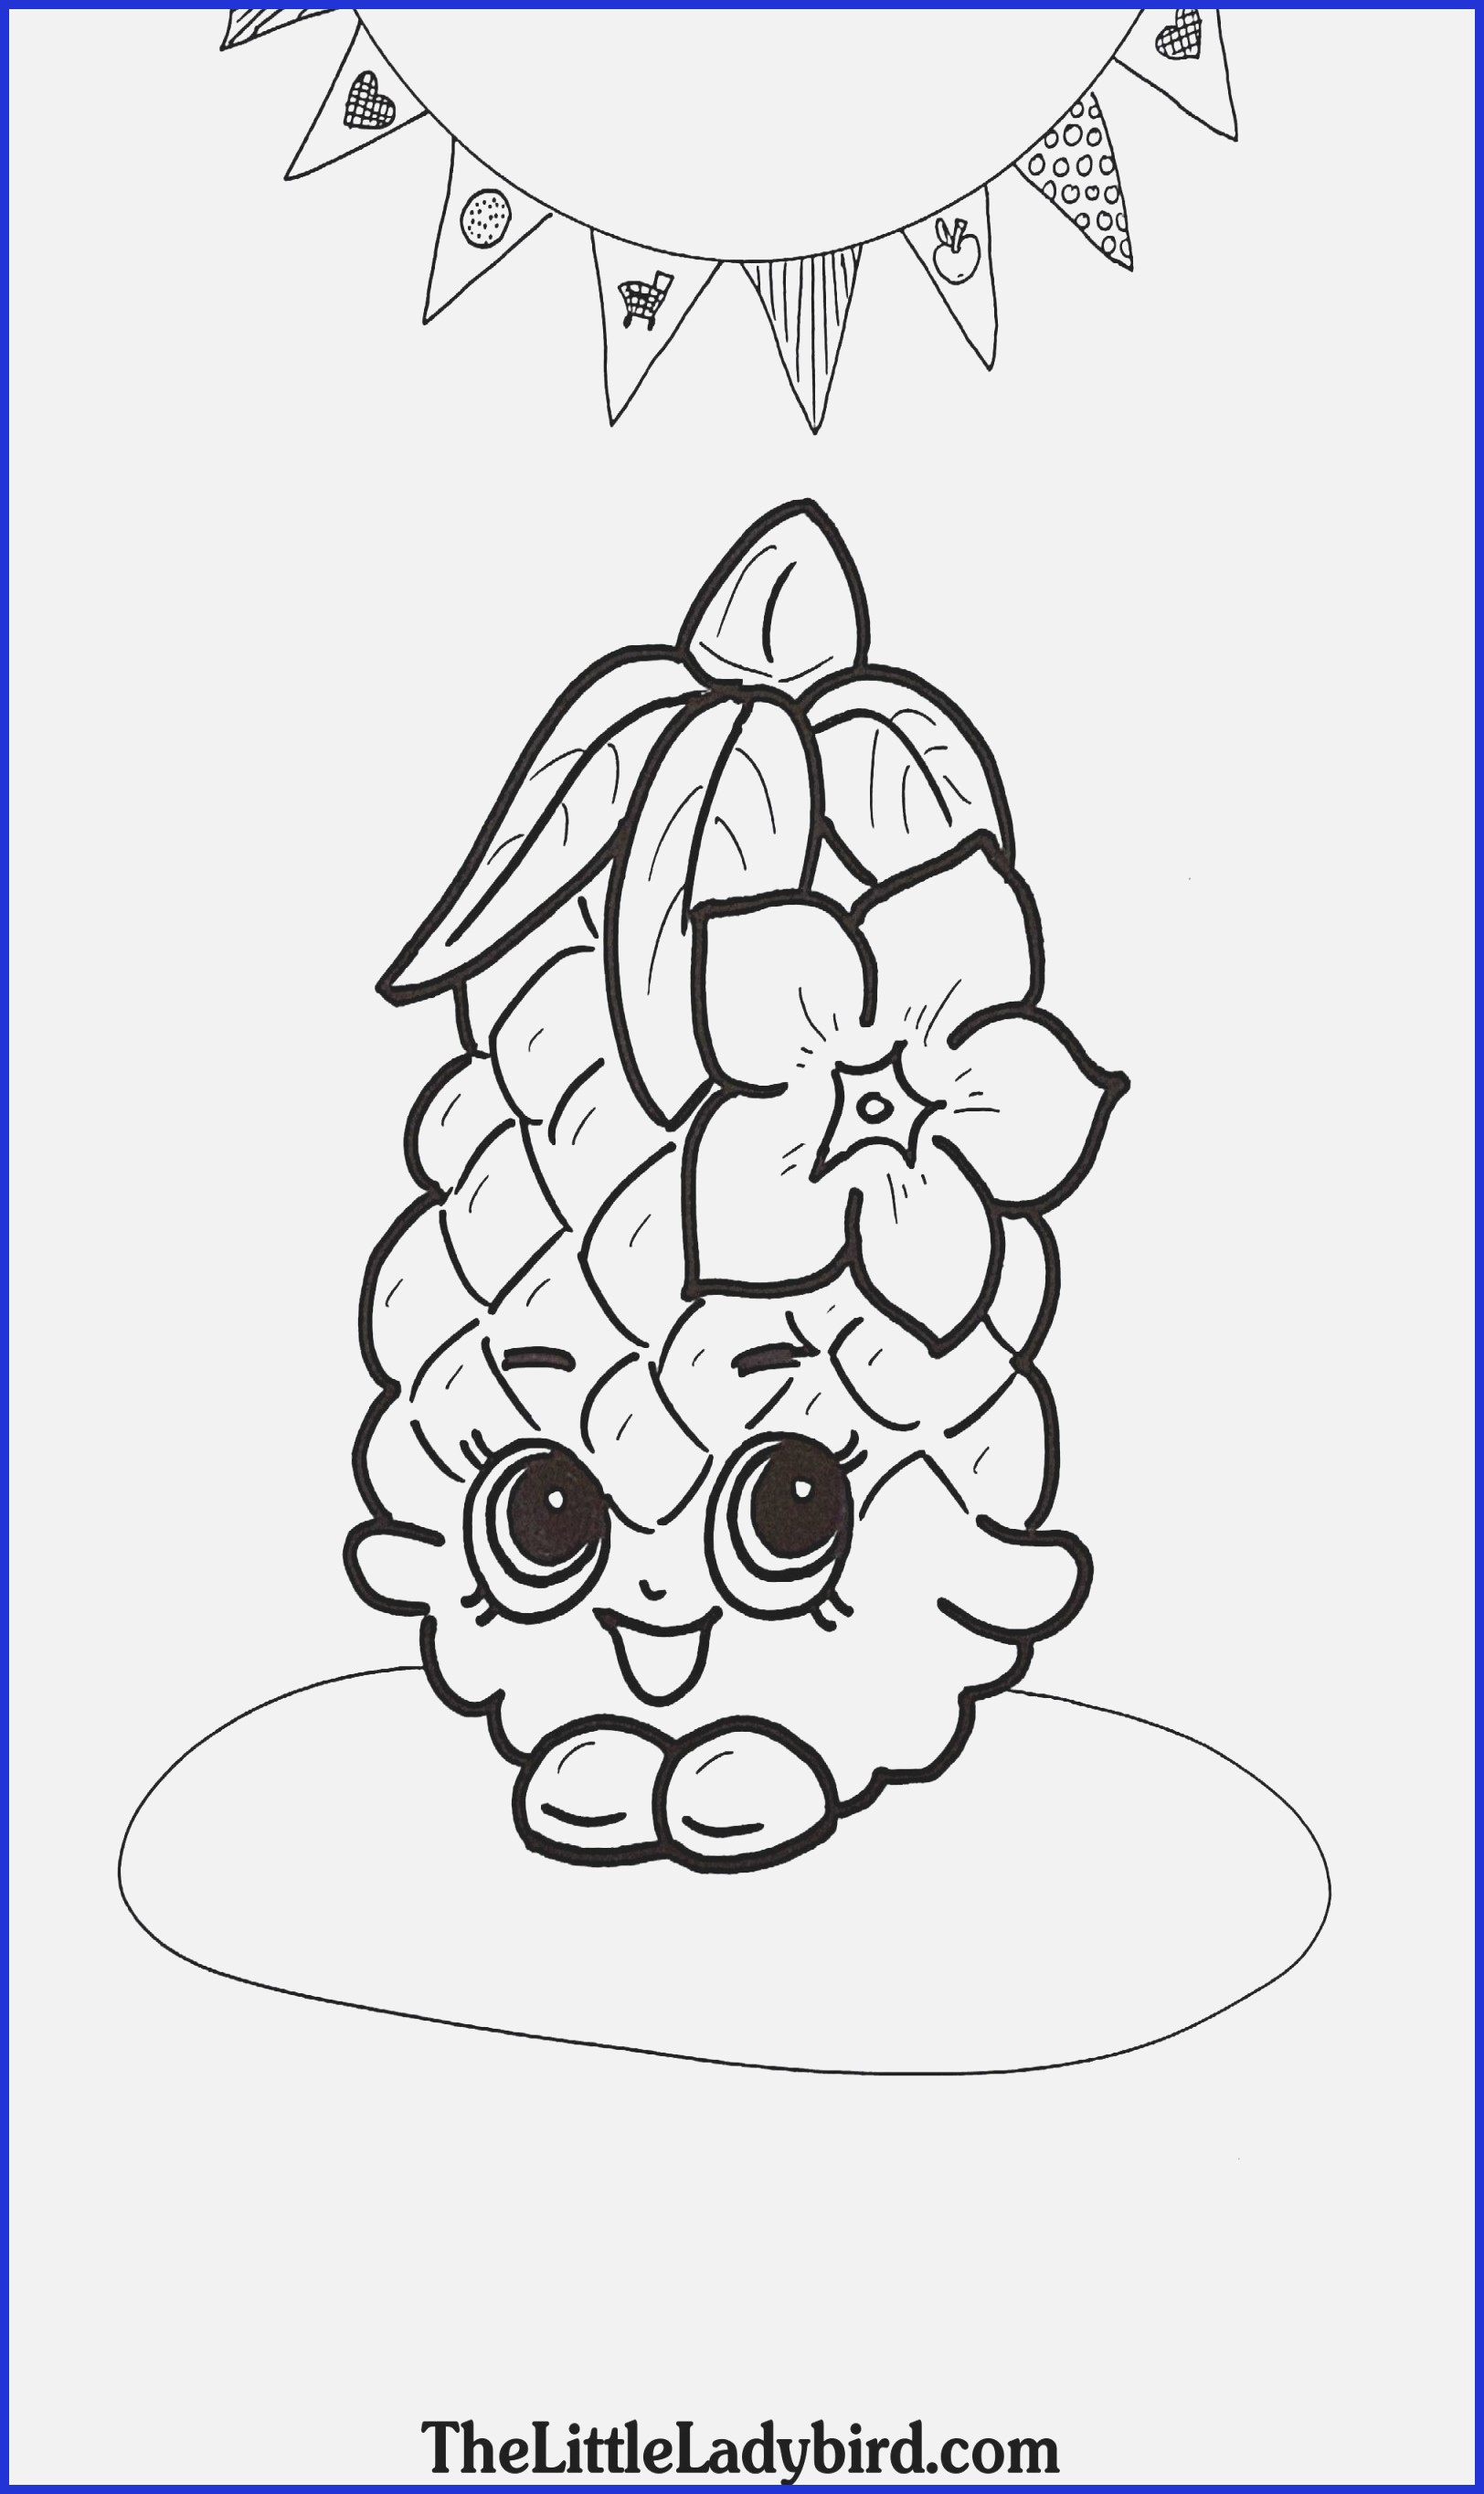 Daisy Duck Coloring Pages Daisy Duck Coloring Pages Marke Pirate Treasure Chest Coloring Sheet